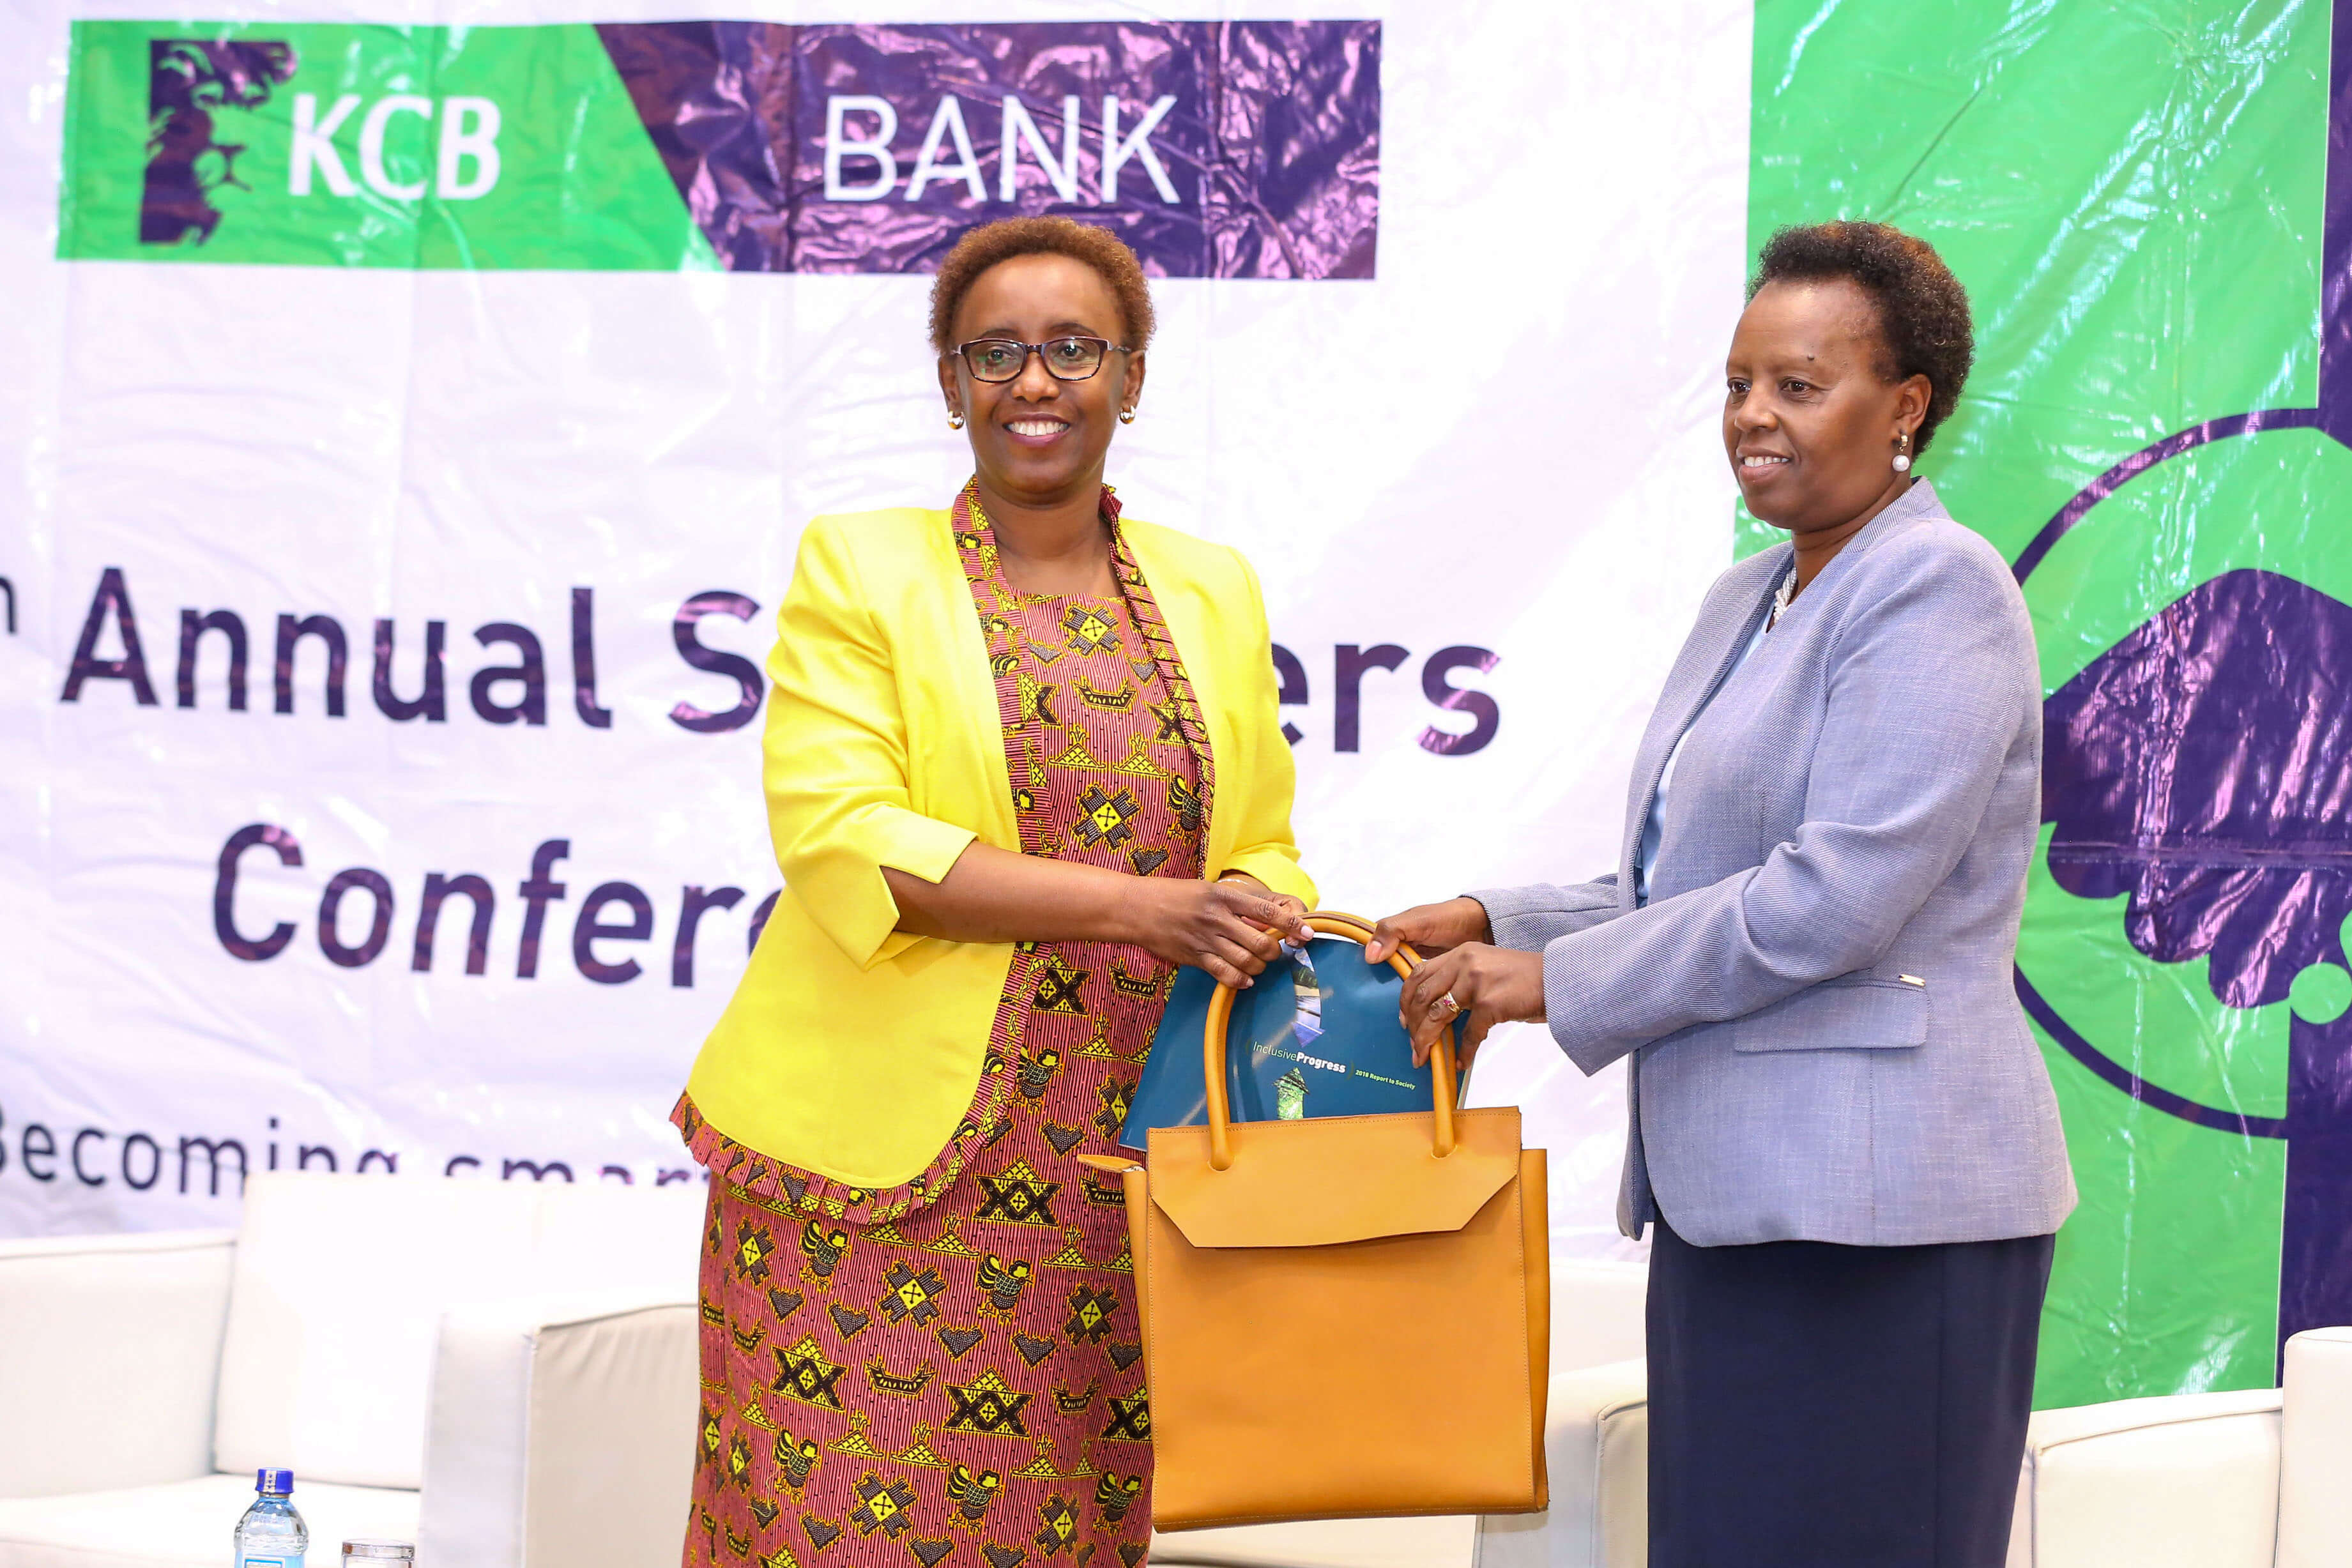 KCB Group Head of Corporate and Regulatory Affairs, Judith Sidi Odhiambo (L), presents a copy of the 2019 KCB Sustainability Report and token of appreciation to Kenya Breweries Limited Managing Director Jane Karuku during the 5th KCB Annual Supplier conference at a Nairobi hotel. www.businesstoday.co.ke